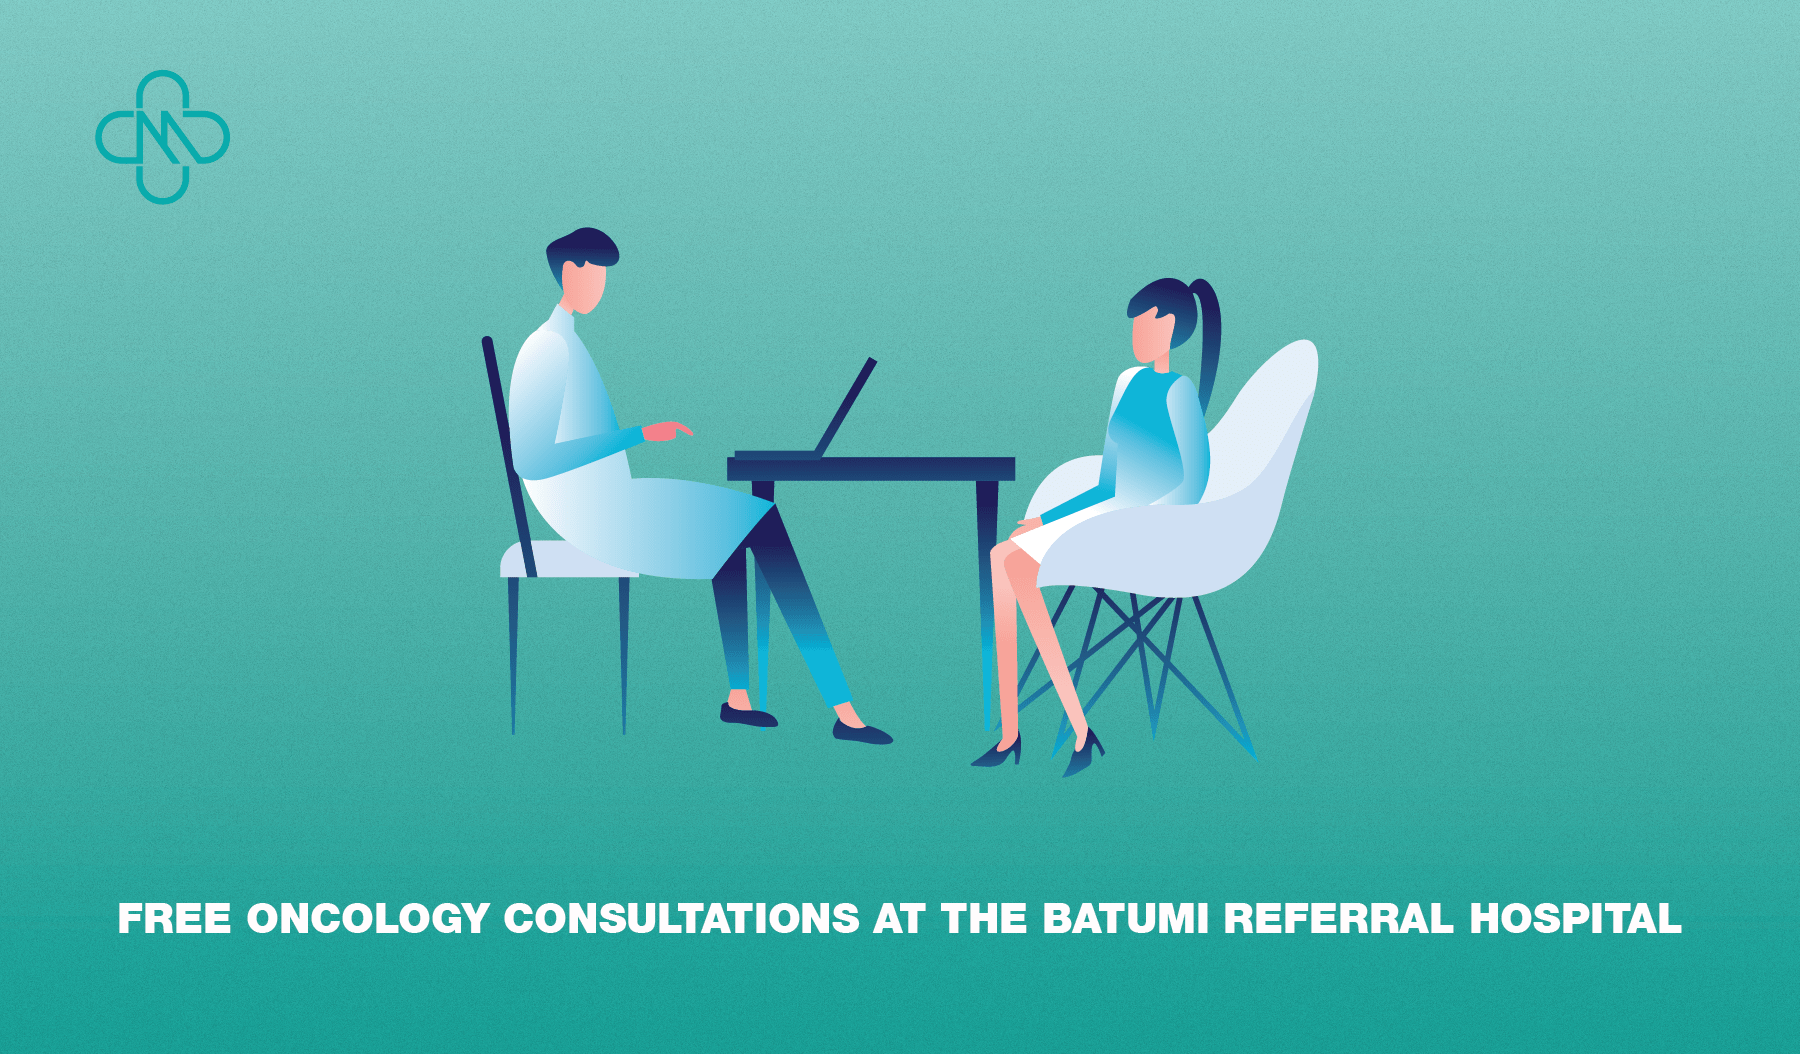 Free oncology consultations at the Batumi Referral Hospital